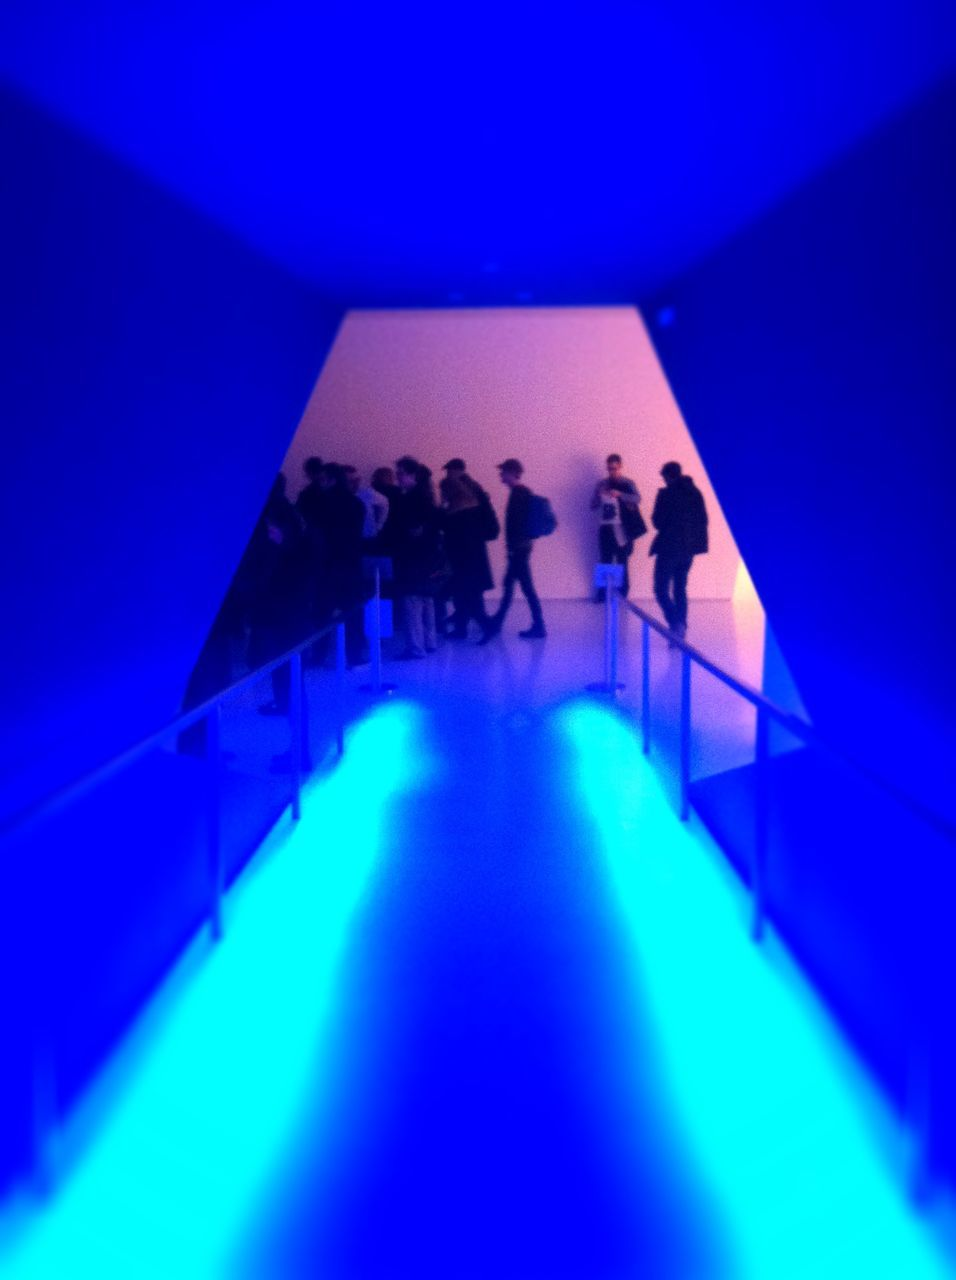 indoors, real people, blue, staircase, lifestyles, men, modern, standing, architecture, women, togetherness, friendship, day, people